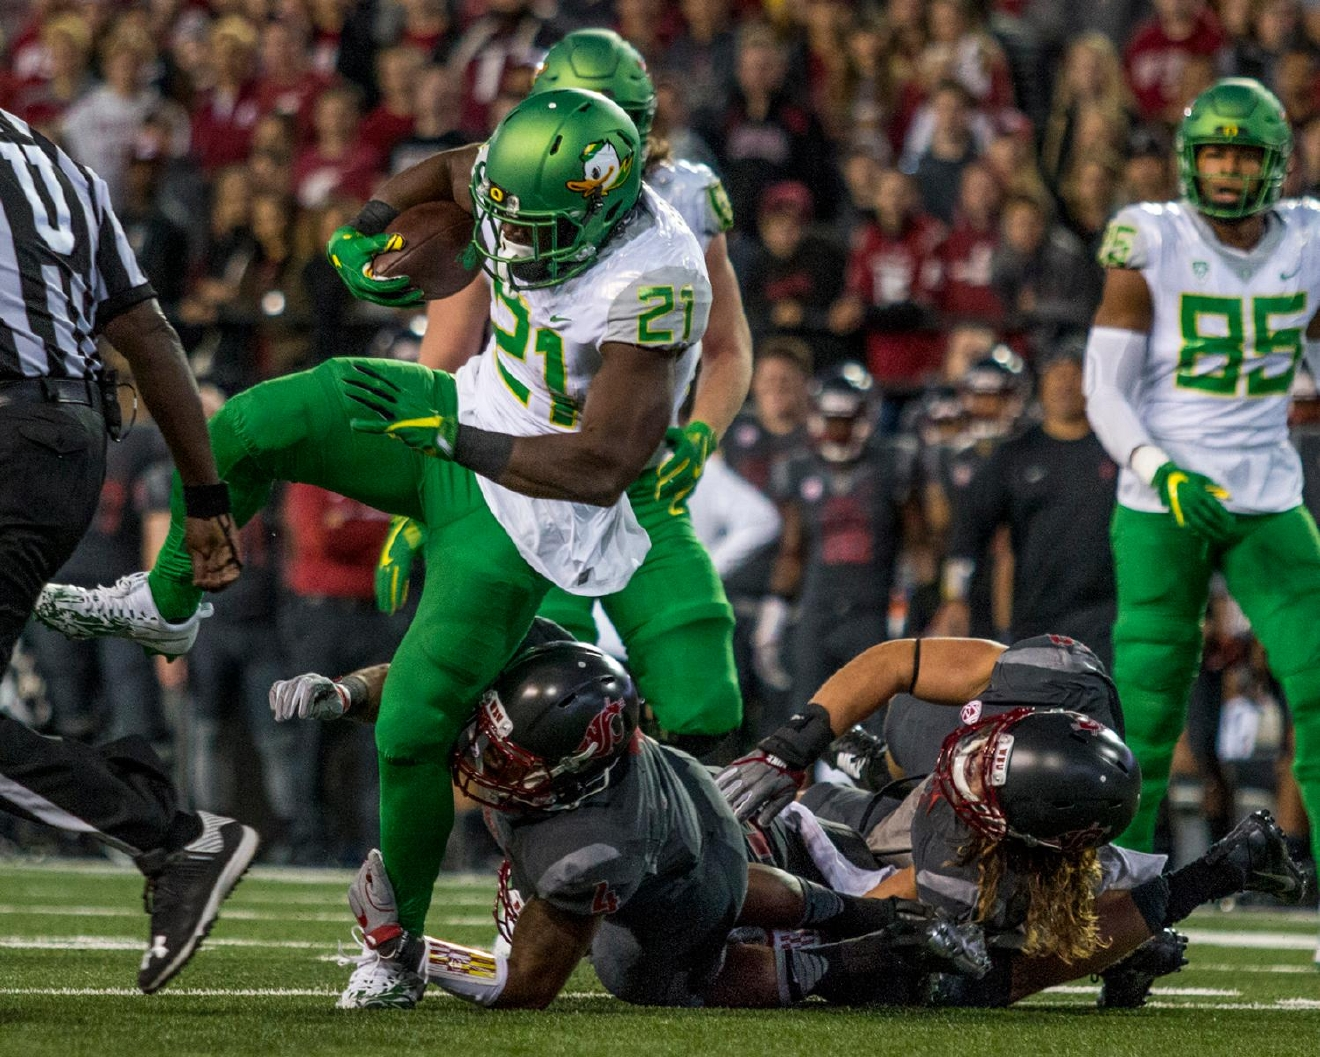 Oregon Ducks Royce Freeman (#21) evades Washington State Cougars defense as he rushes down the field. The Cougars beat the Ducks 51-33 at Martin Stadium on Saturday evening. Photo by Katie Pietzold